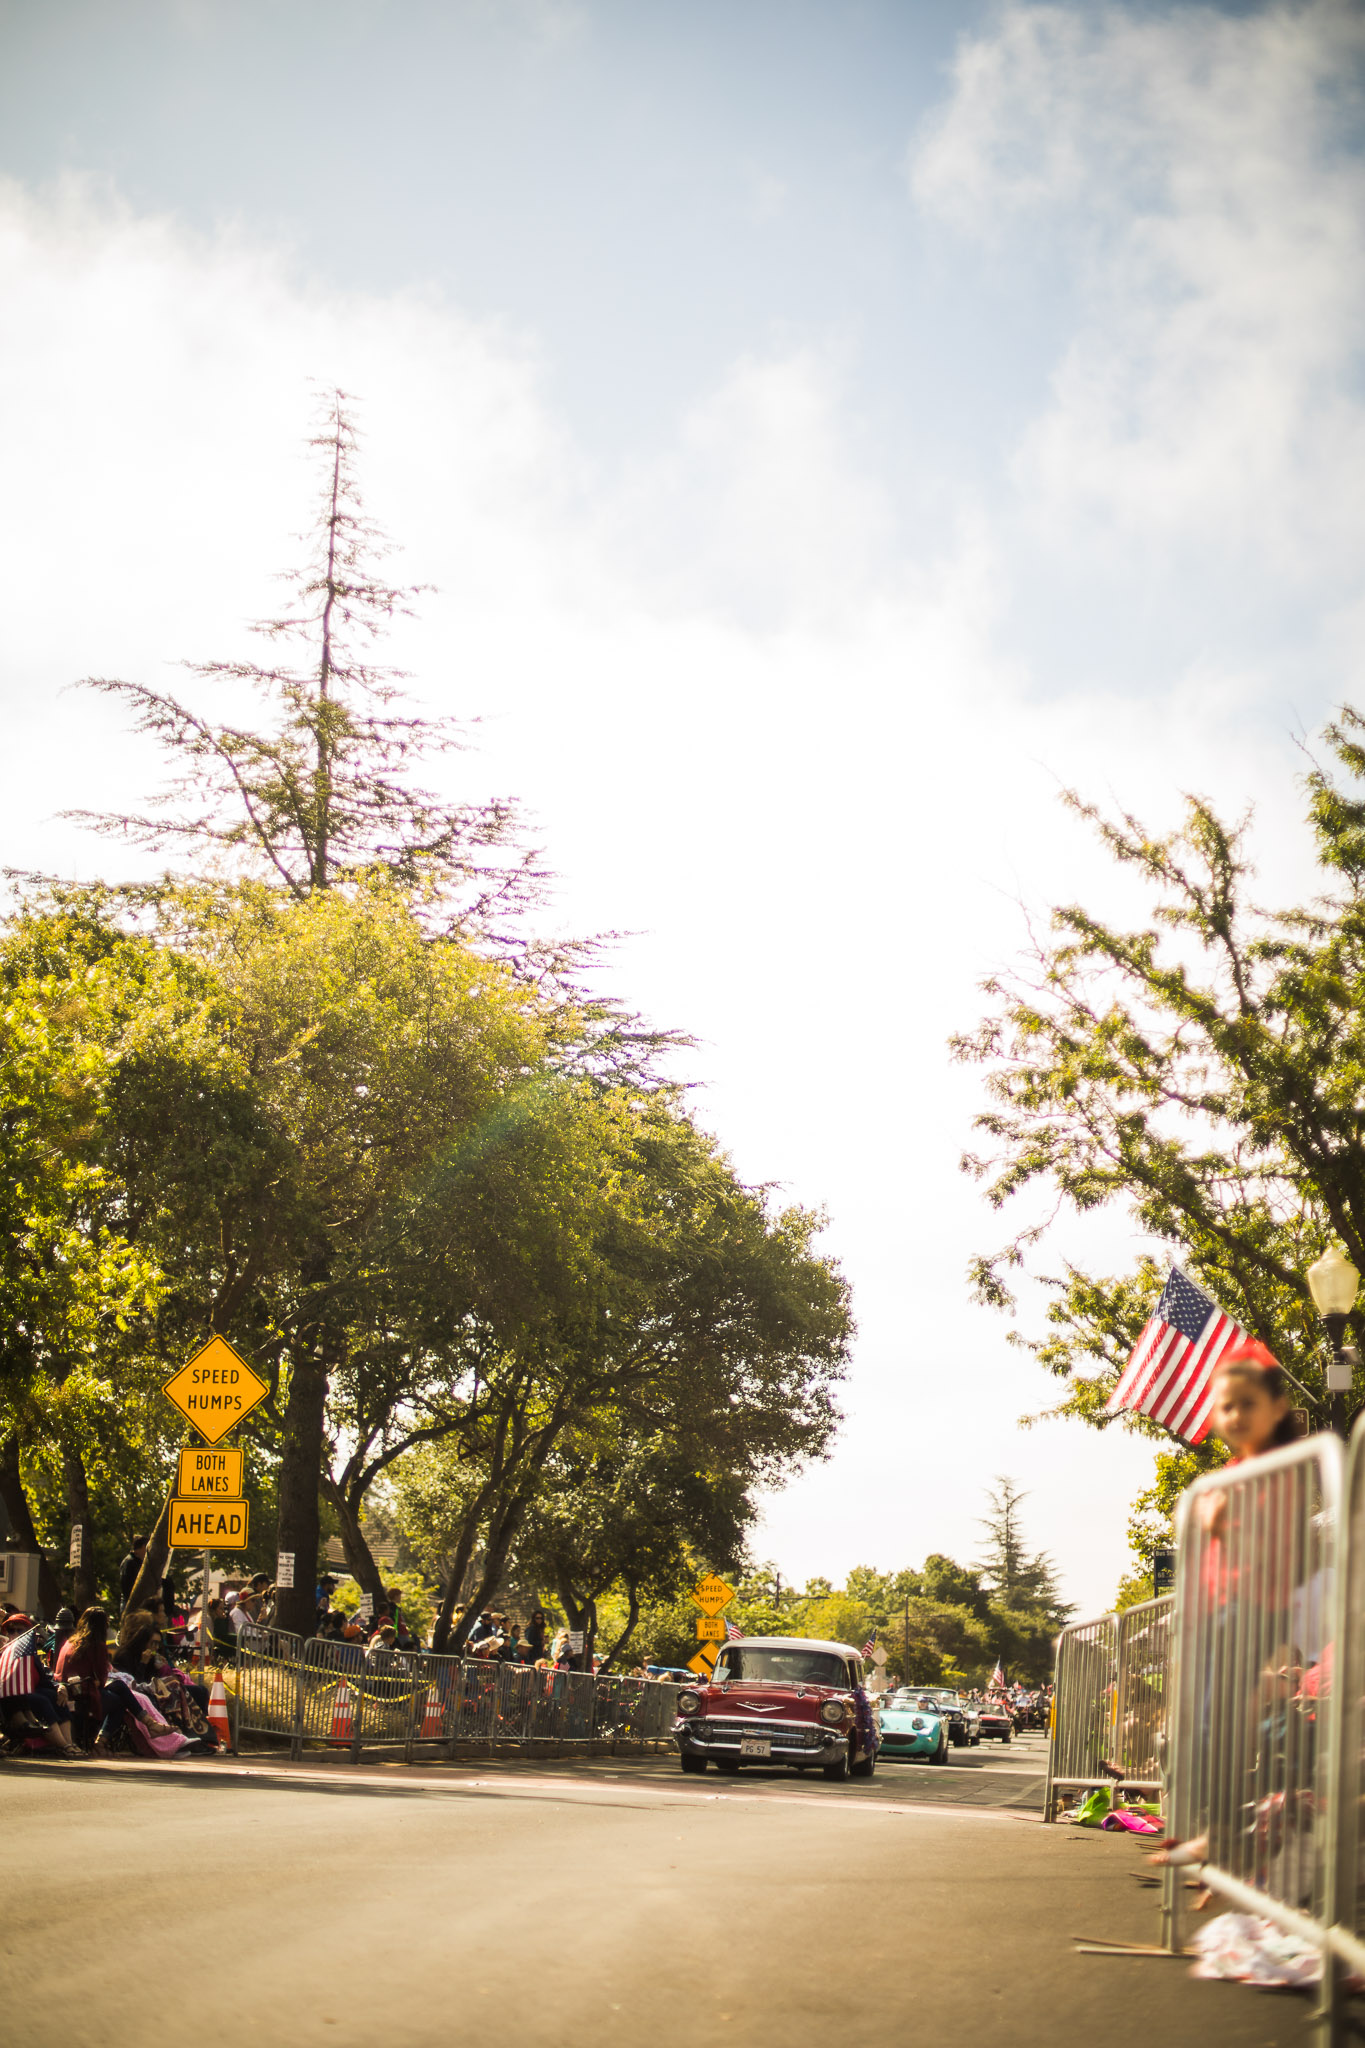 Archer_Inspired_Photography_Morgan_Hill_California_4th_of_july_parade-19.jpg